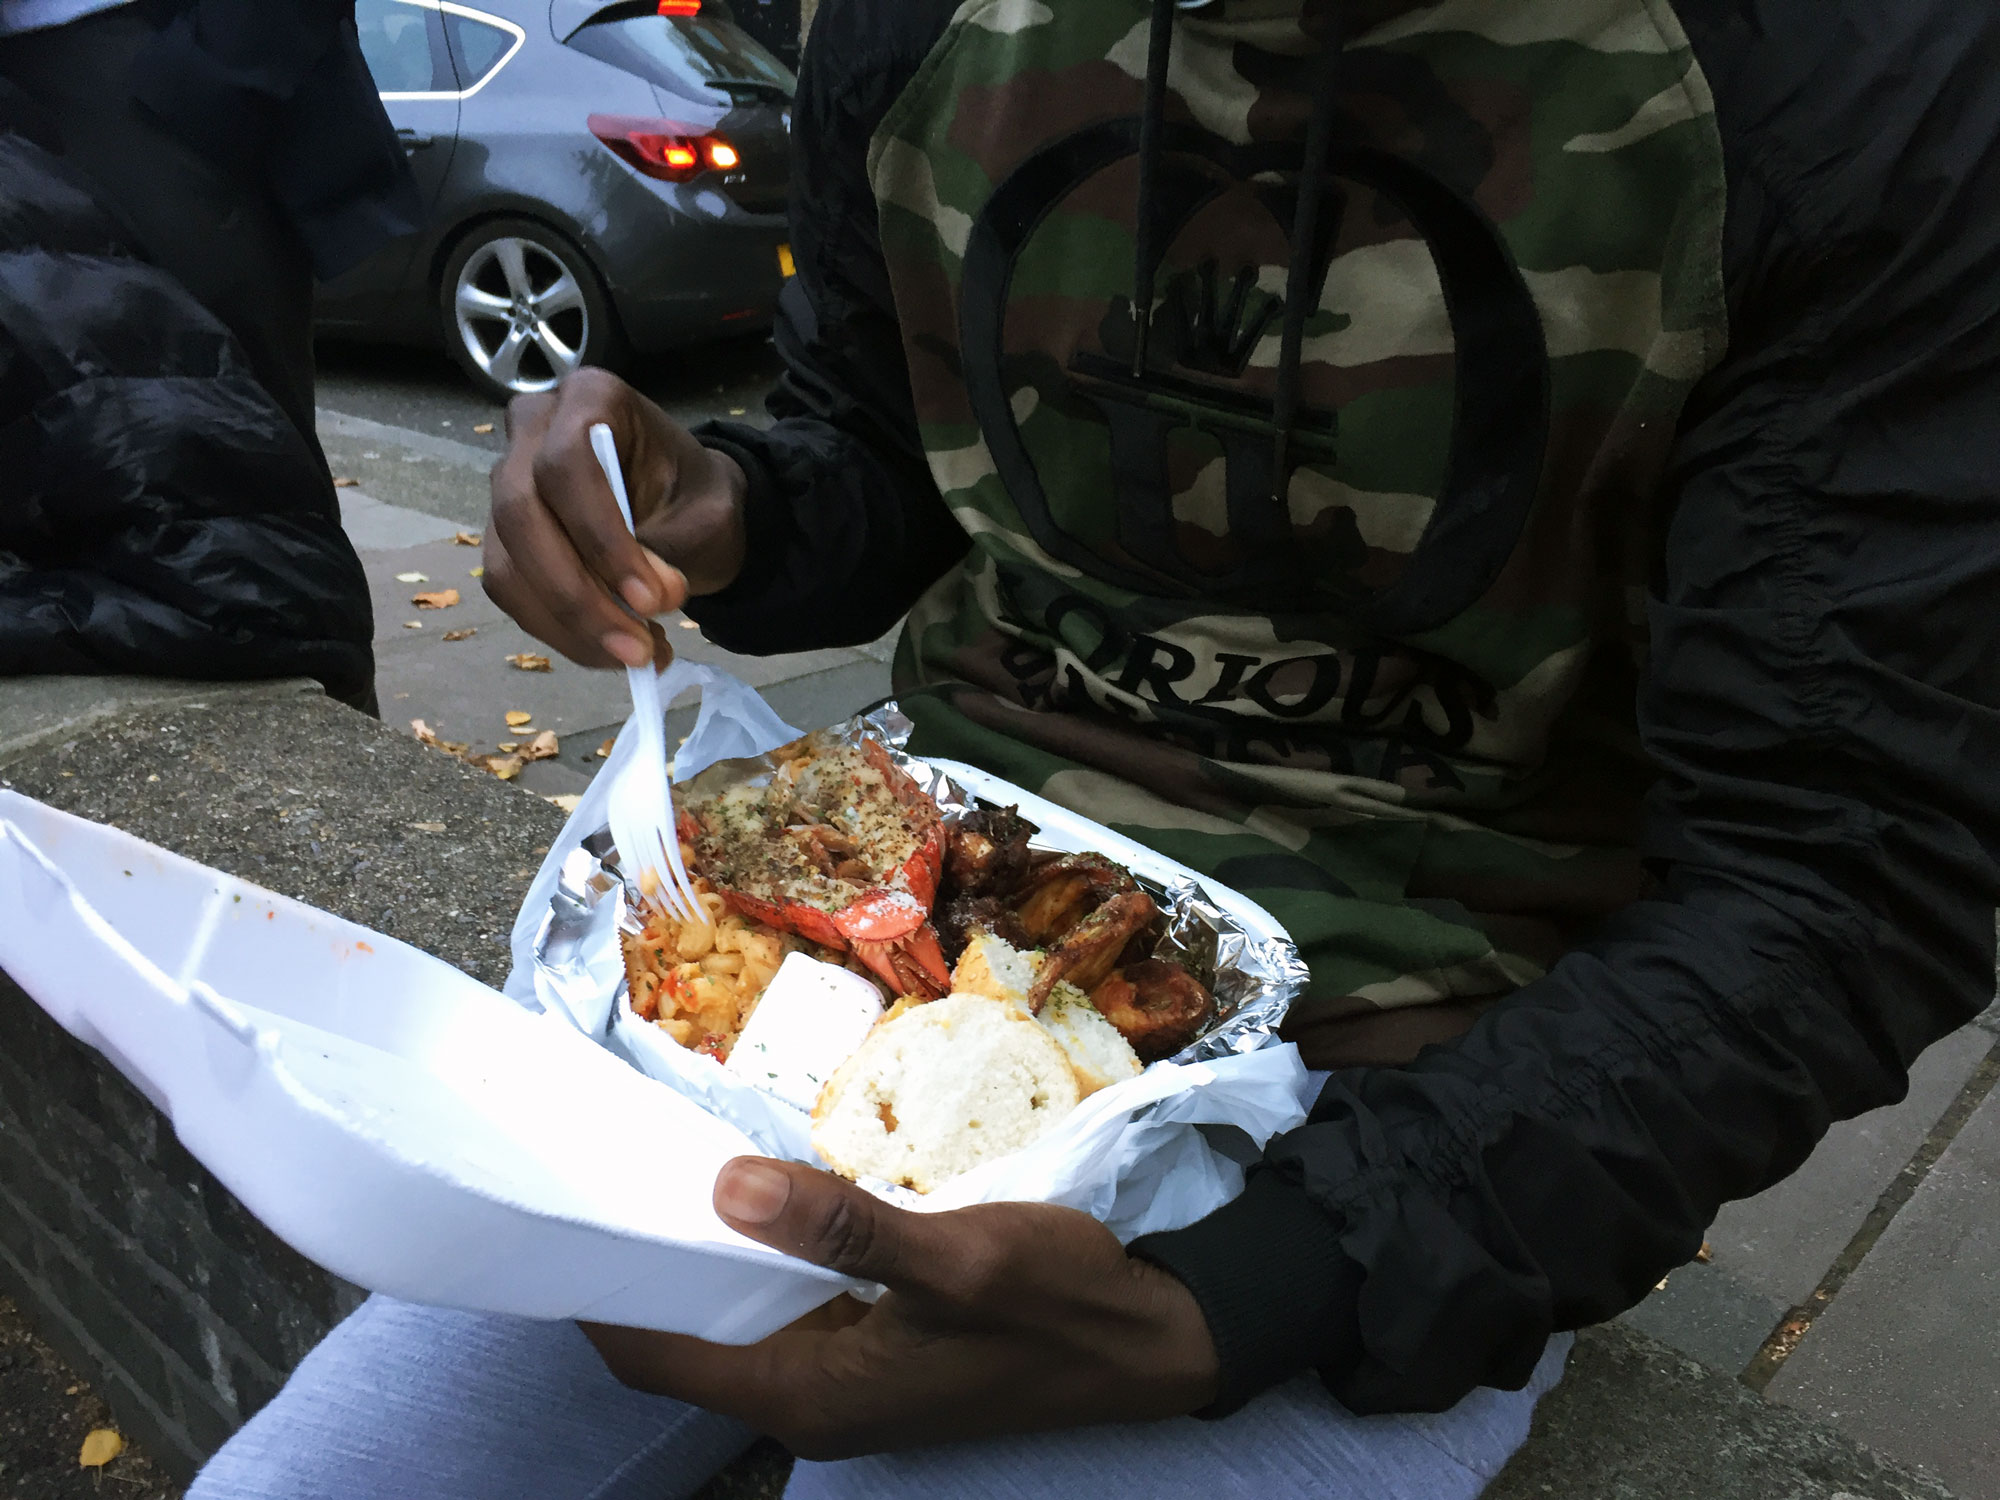 This Guy Built a Cult Business Selling Food on Instagram  MUNCHIES